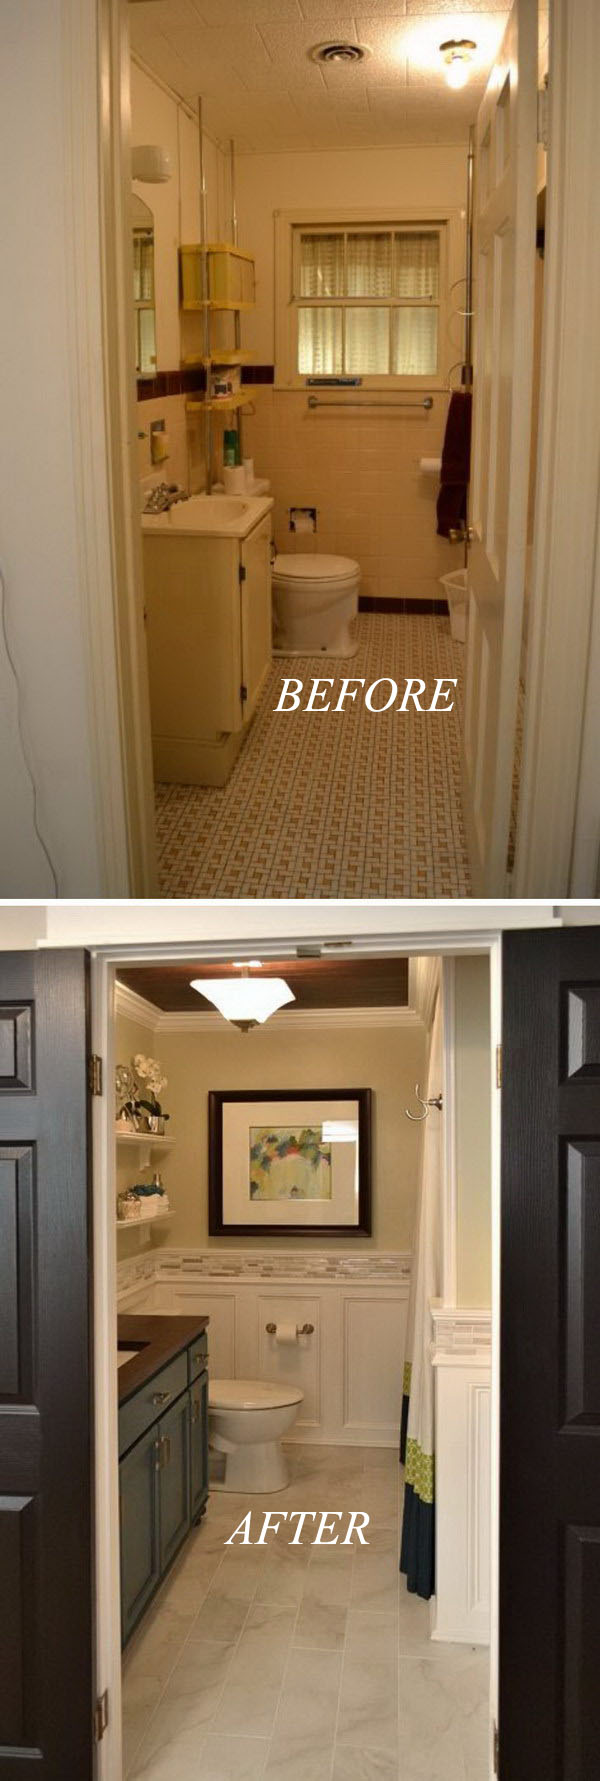 Before and After: 20+ Awesome Bathroom Makeovers - Hative on Bathroom Renovation Ideas  id=83541